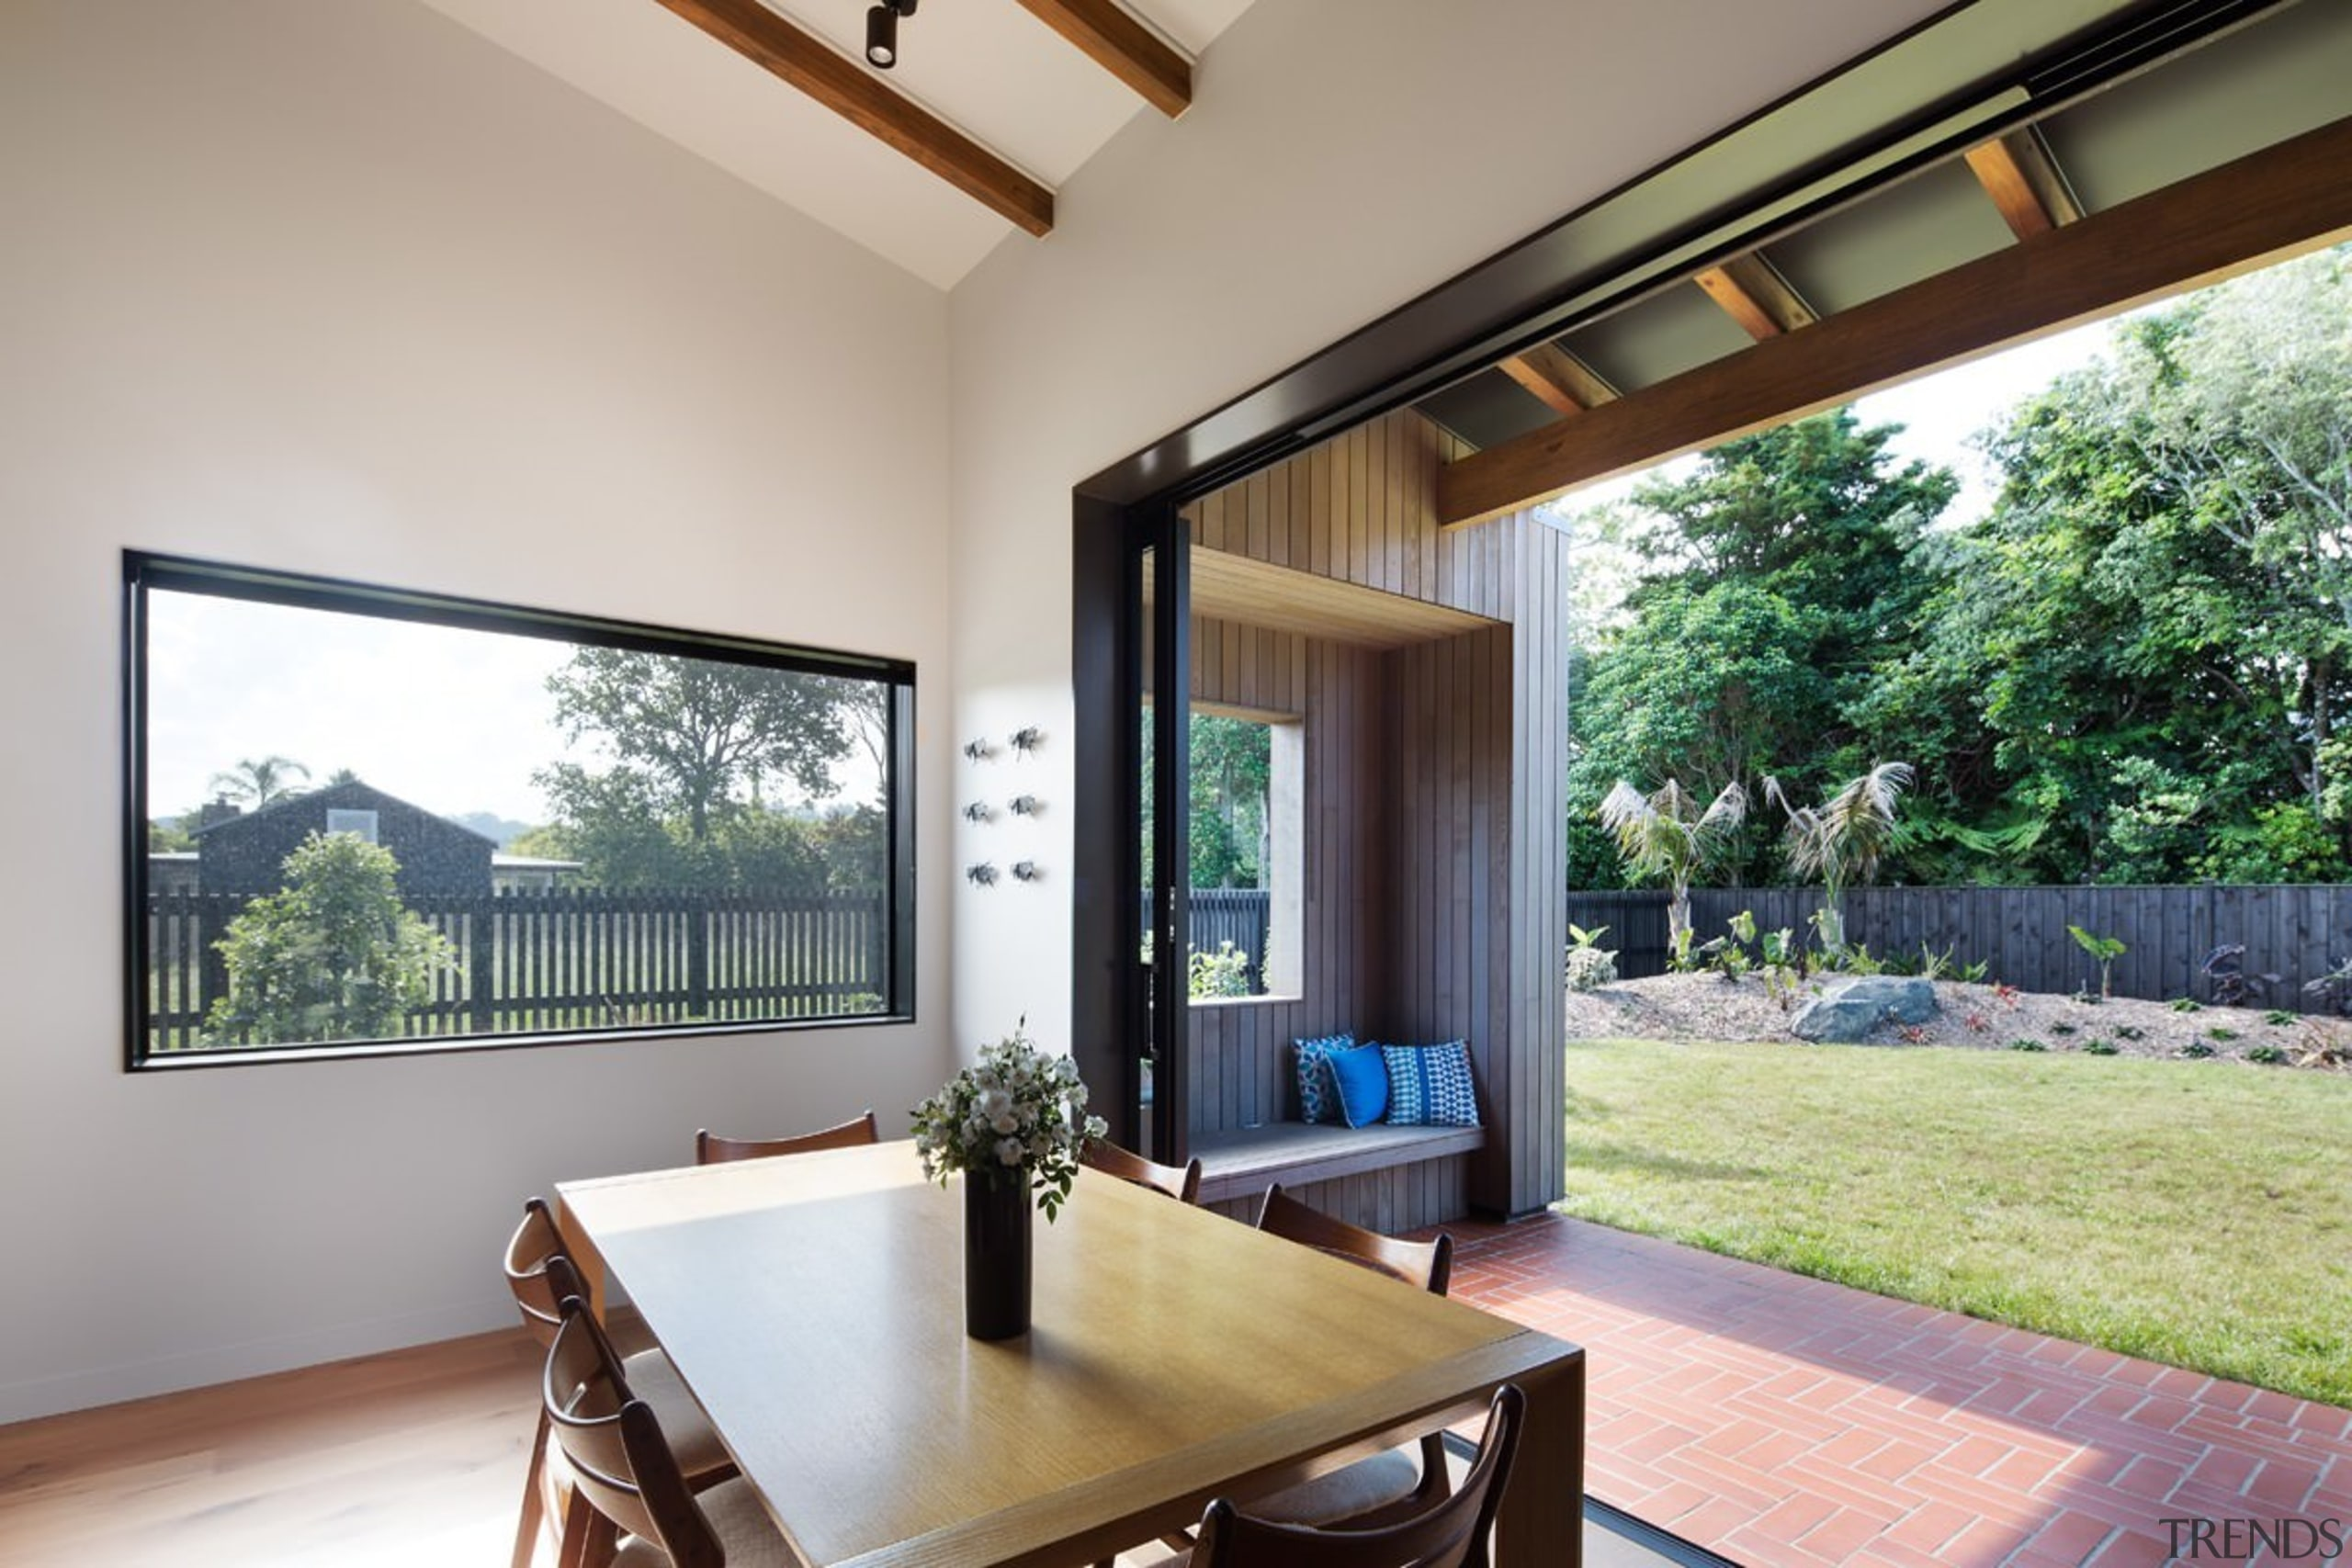 The dining area opens up to the back estate, house, interior design, property, real estate, window, gray